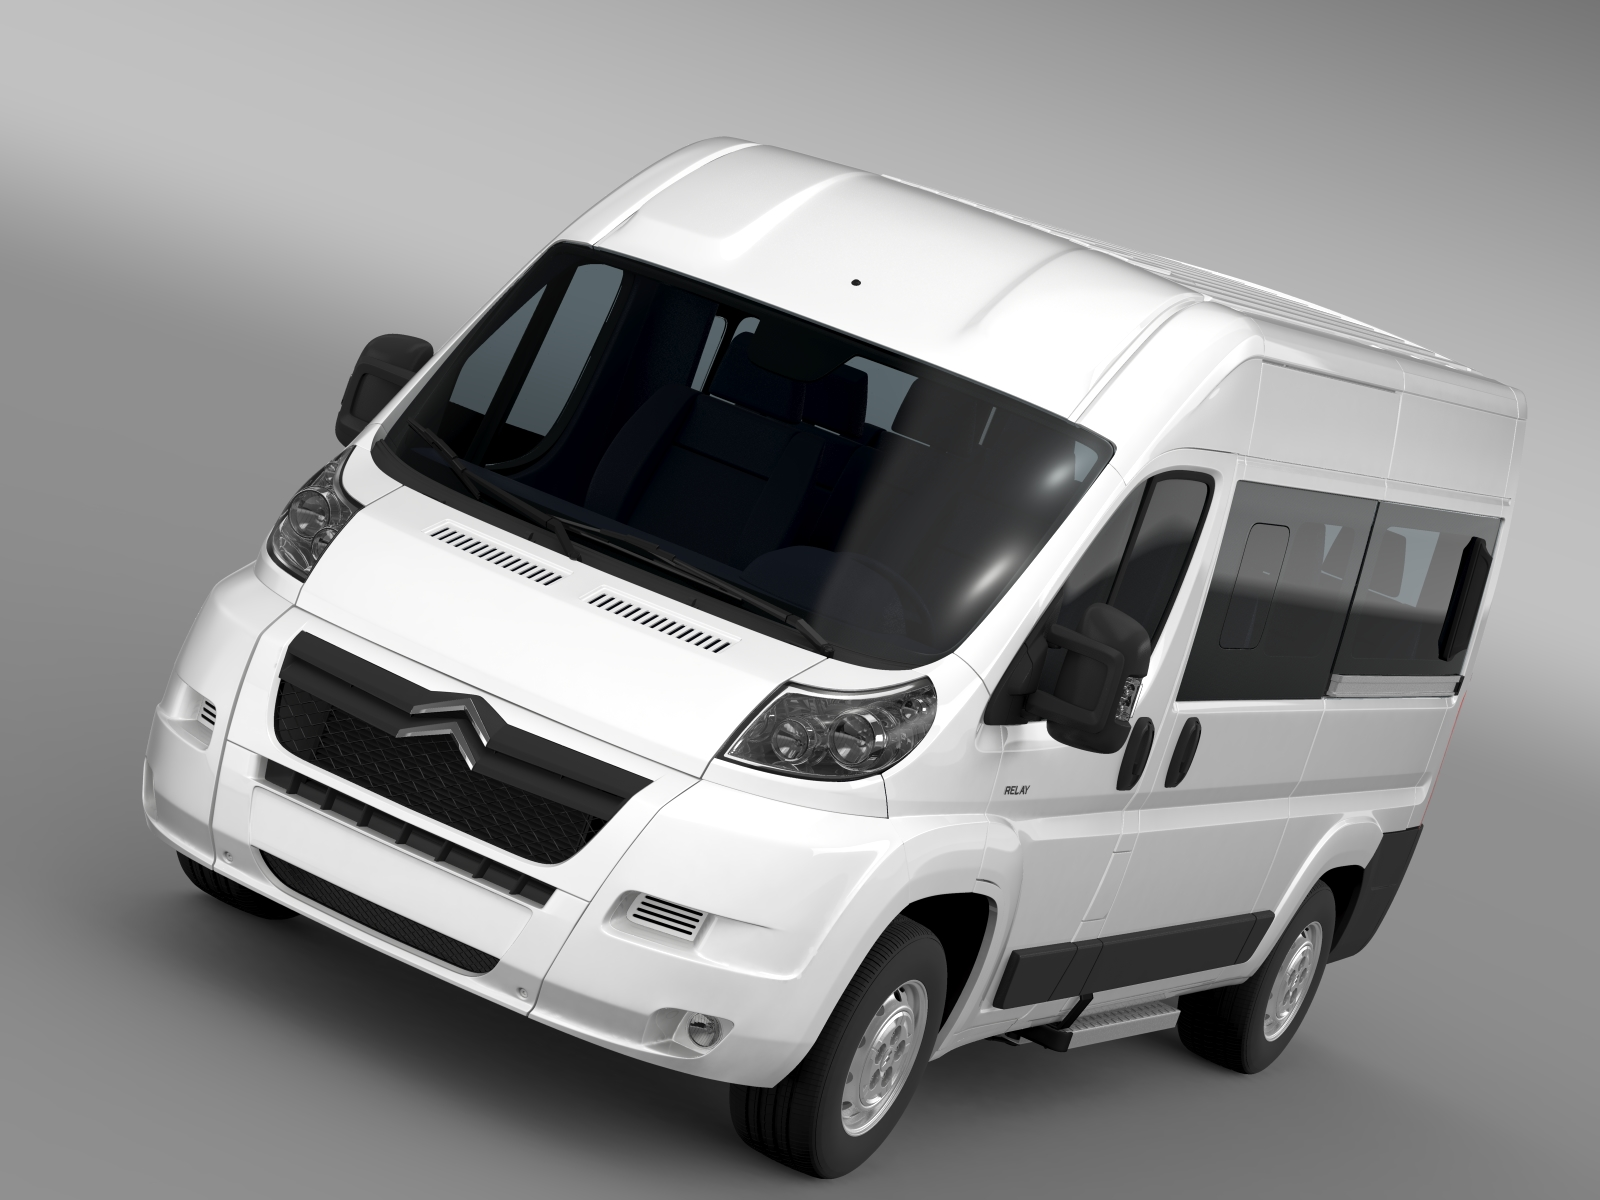 citroen relay window van l2h2 2006-2014 3d model 3ds max fbx c4d lwo ma mb hrc xsi obj 210071